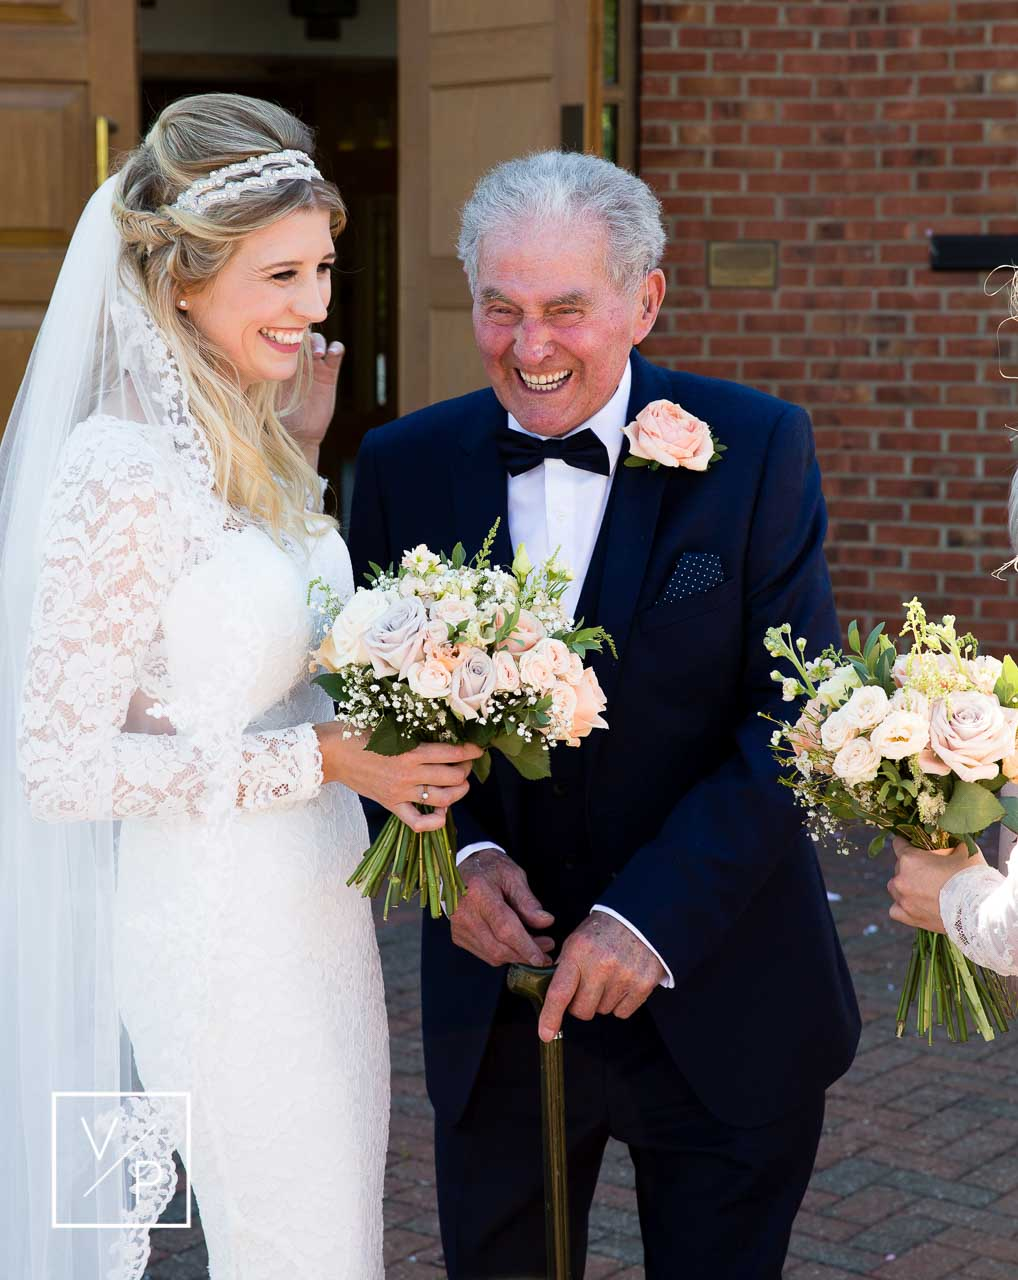 Christina with her Grandad after the ceremony - The Great Barn wedding videographer Veiled Productions